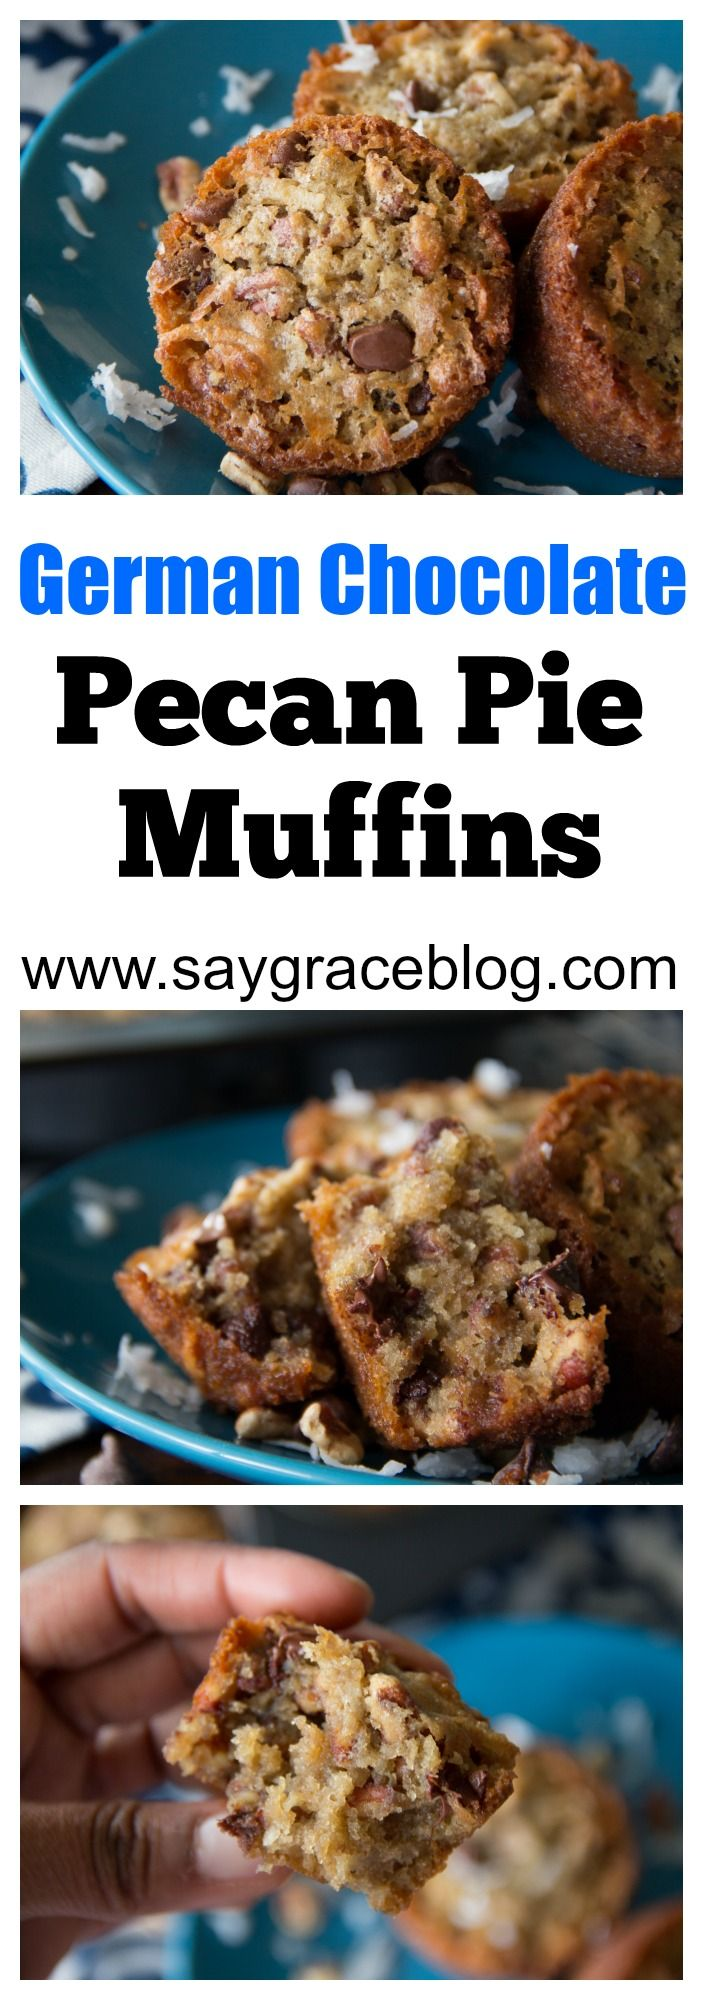 Pecan pie muffins go up a notch when combined with yummy semi-sweet chocolate chips and tasty sweetened coconut!